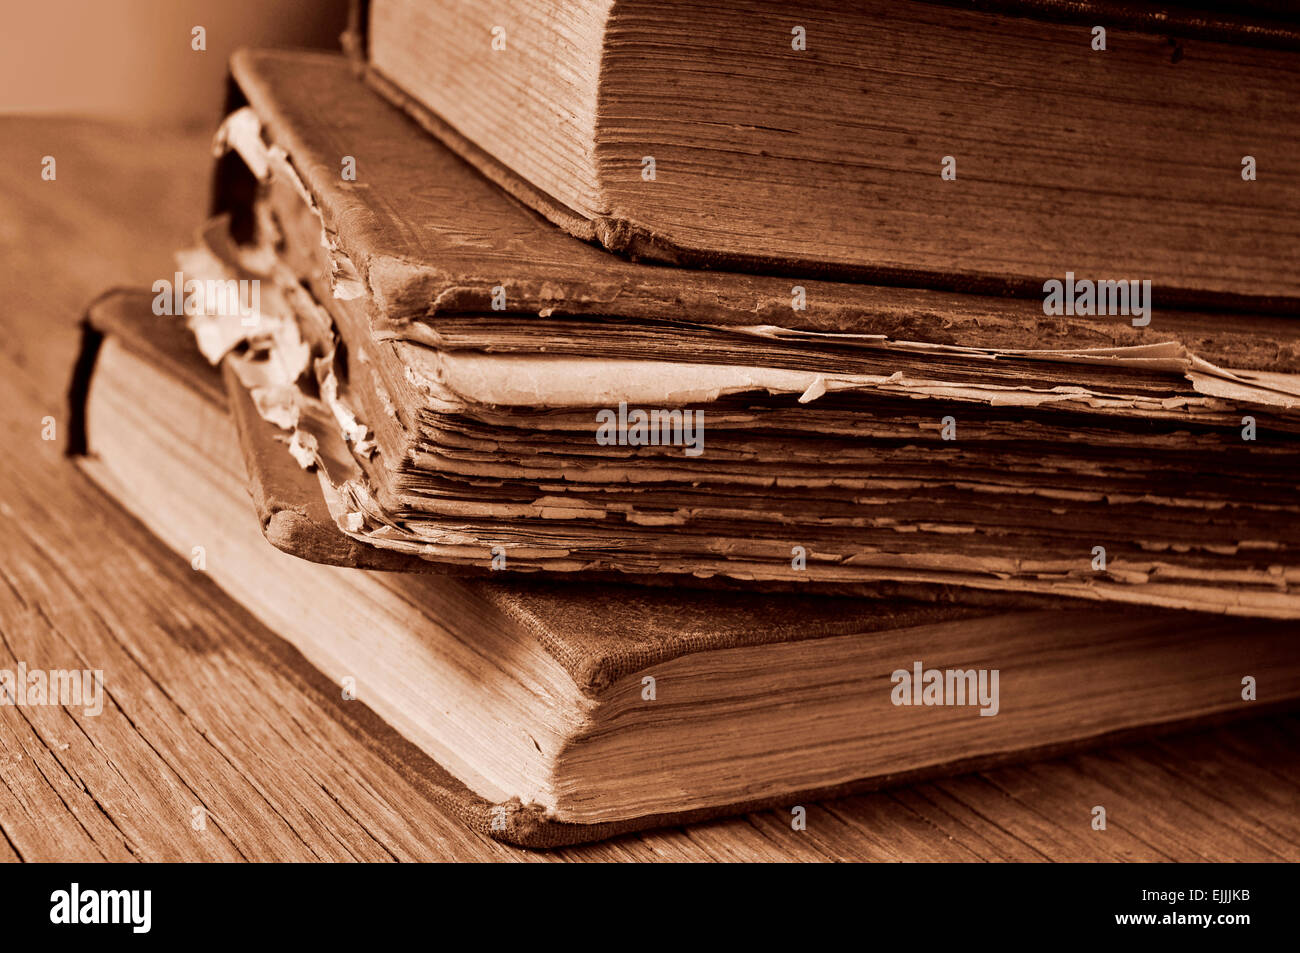 closeup of a pile of worn-out old books on a rustic wooden table, in sepia toning - Stock Image